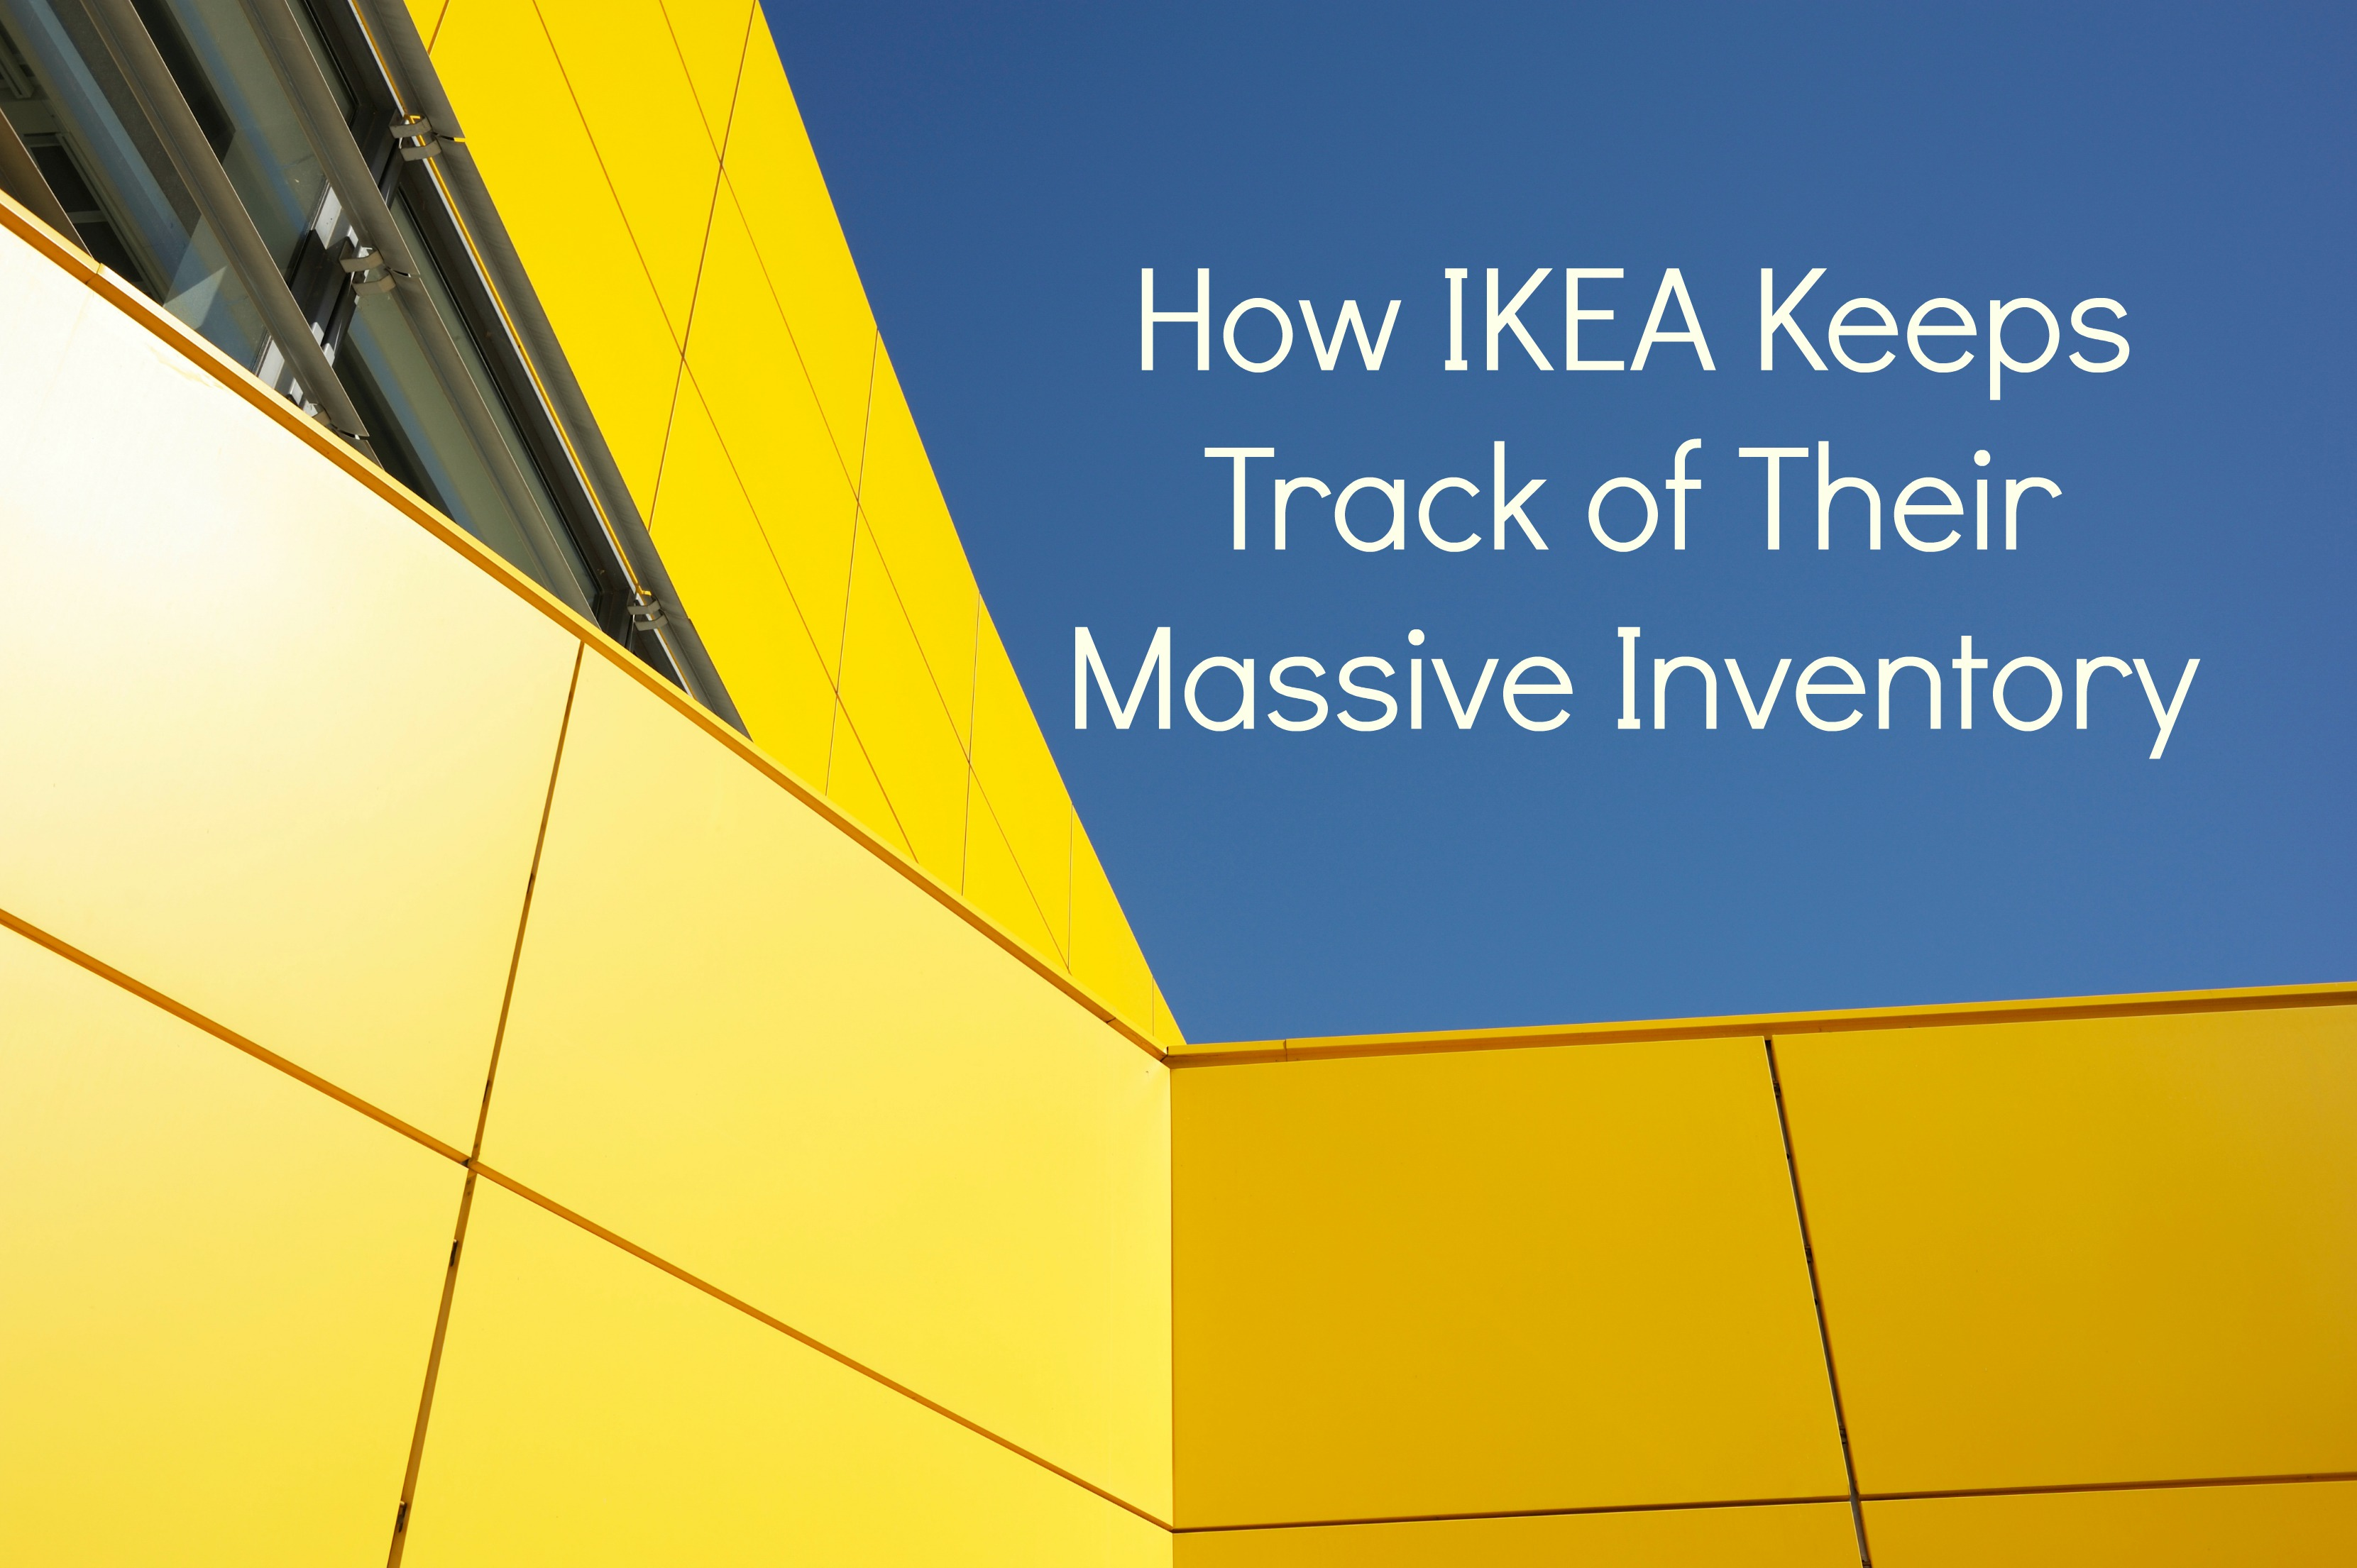 information management system of ikea For facilities with high-flow, automation in storage management and retrieval  system is implemented, while the management system is more manual in low- flow.